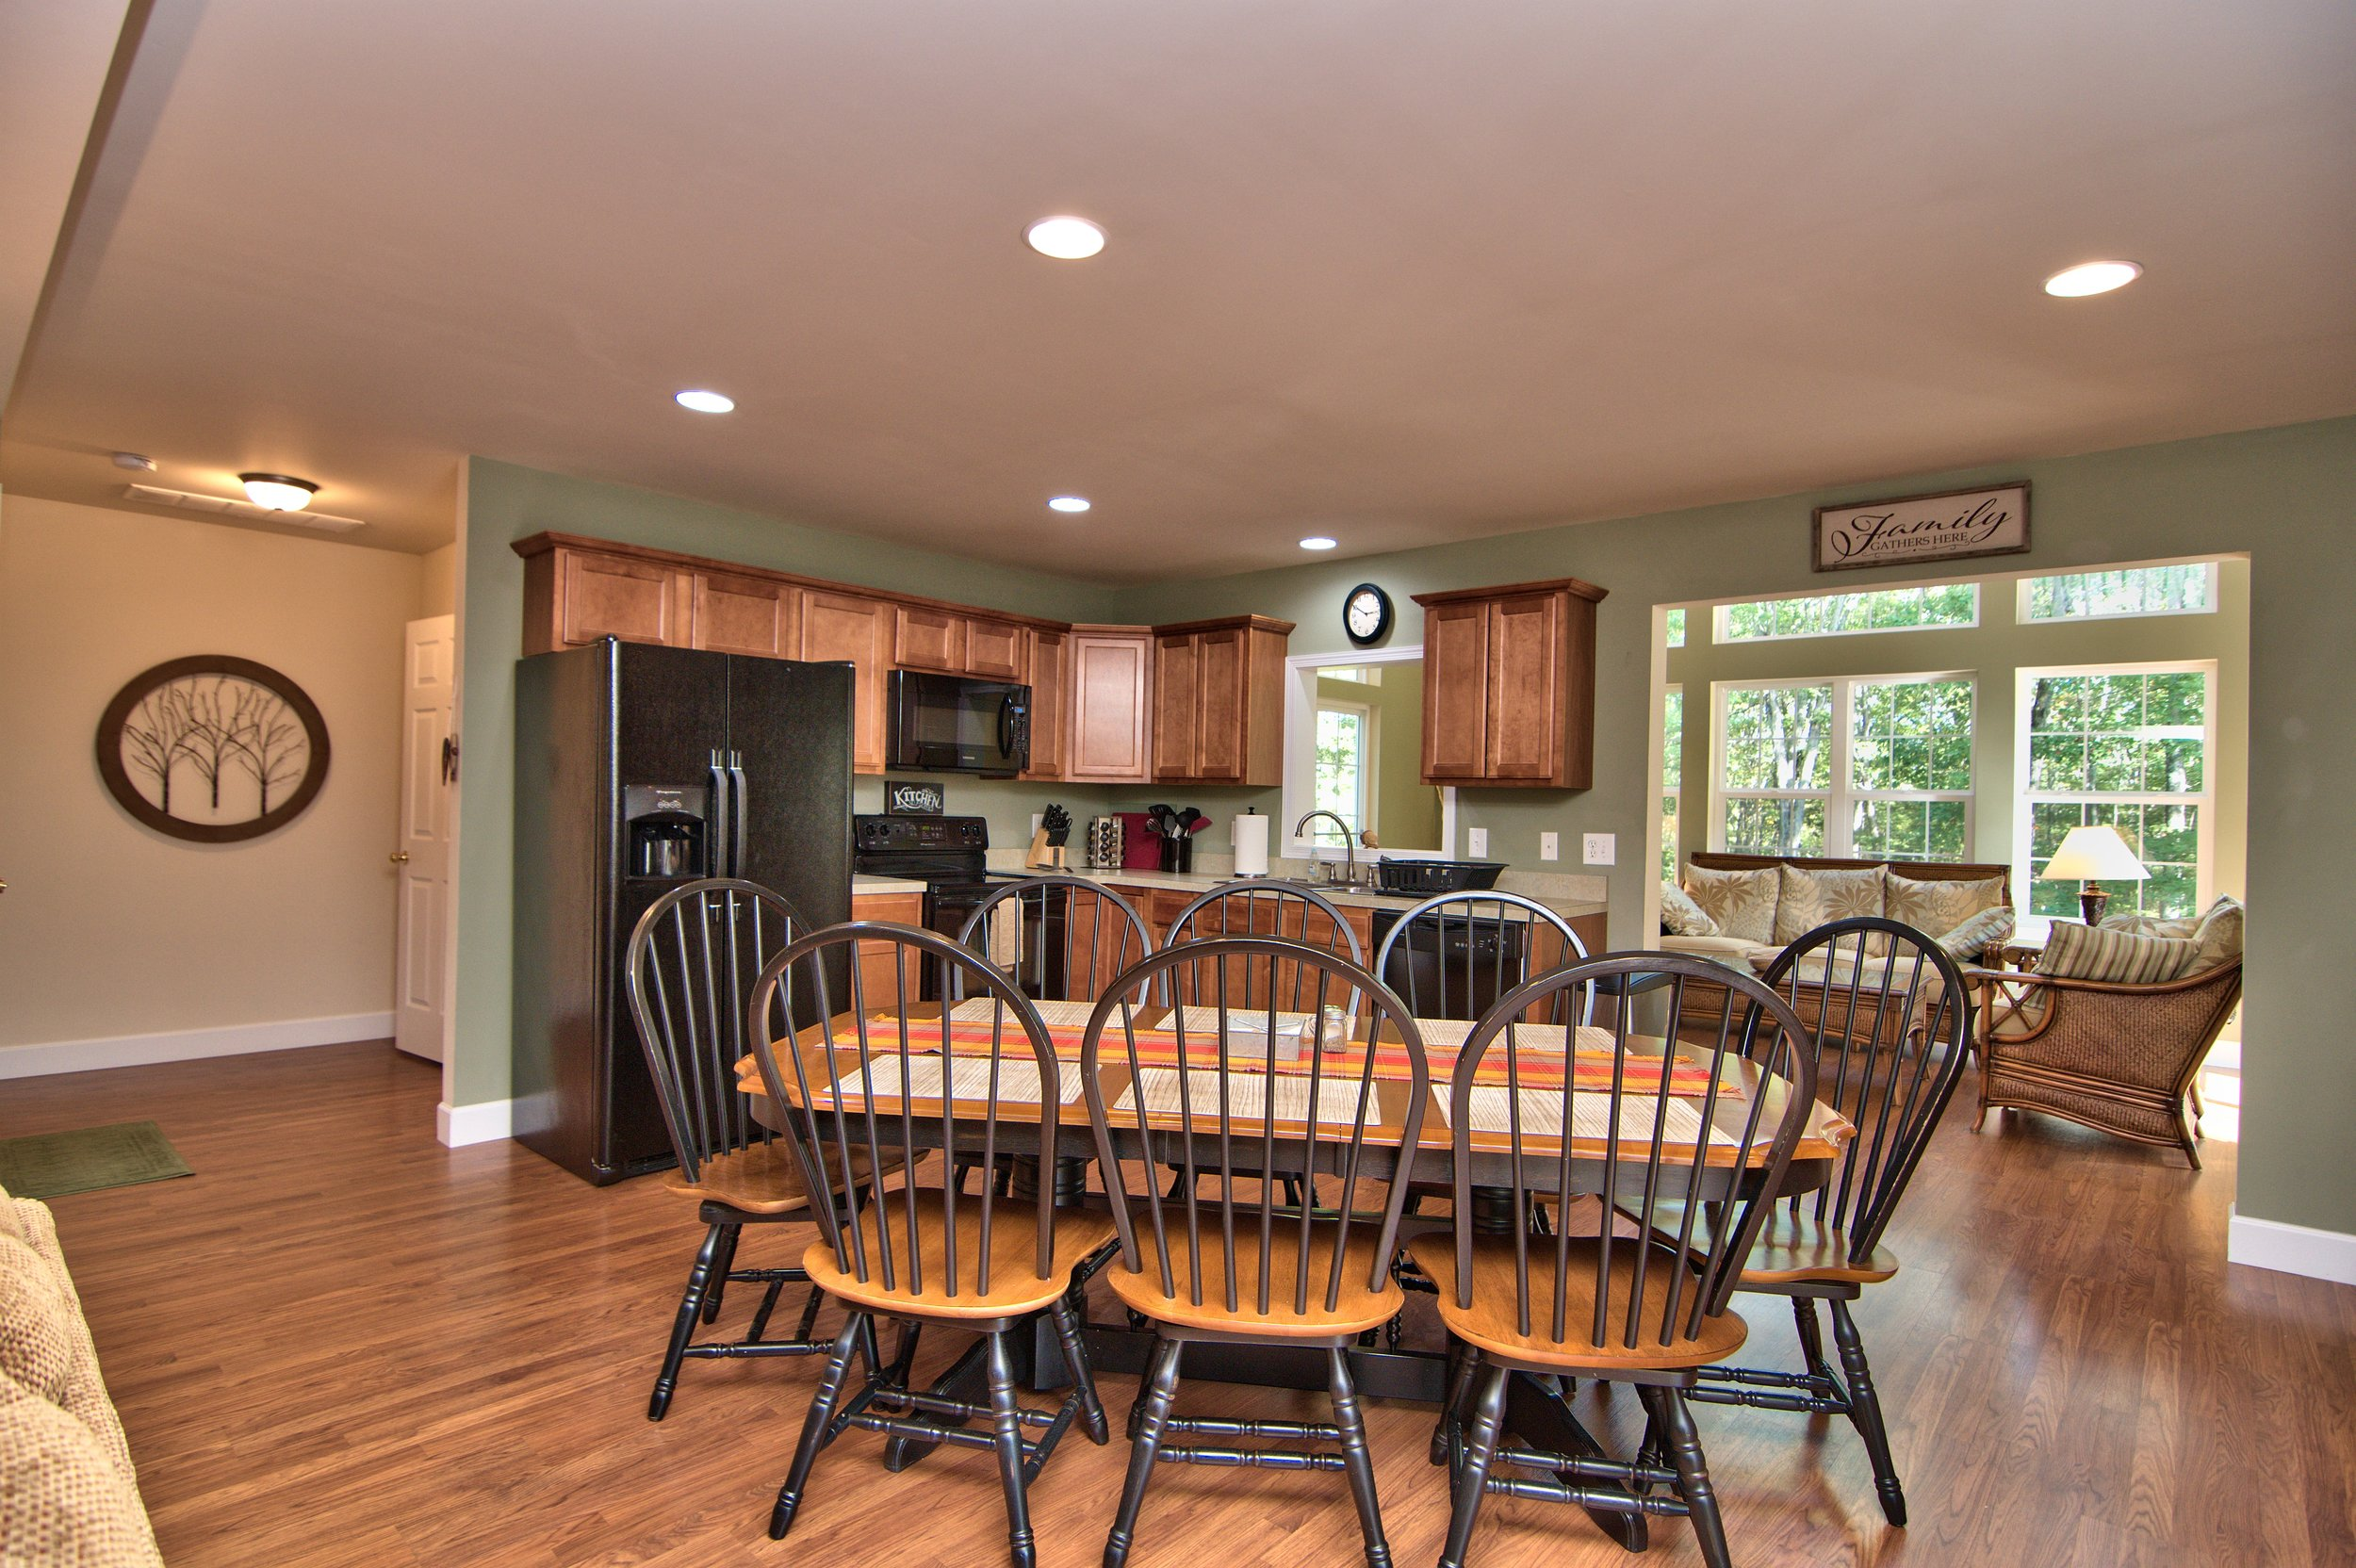 Kitchen Dining Area View 1.jpg